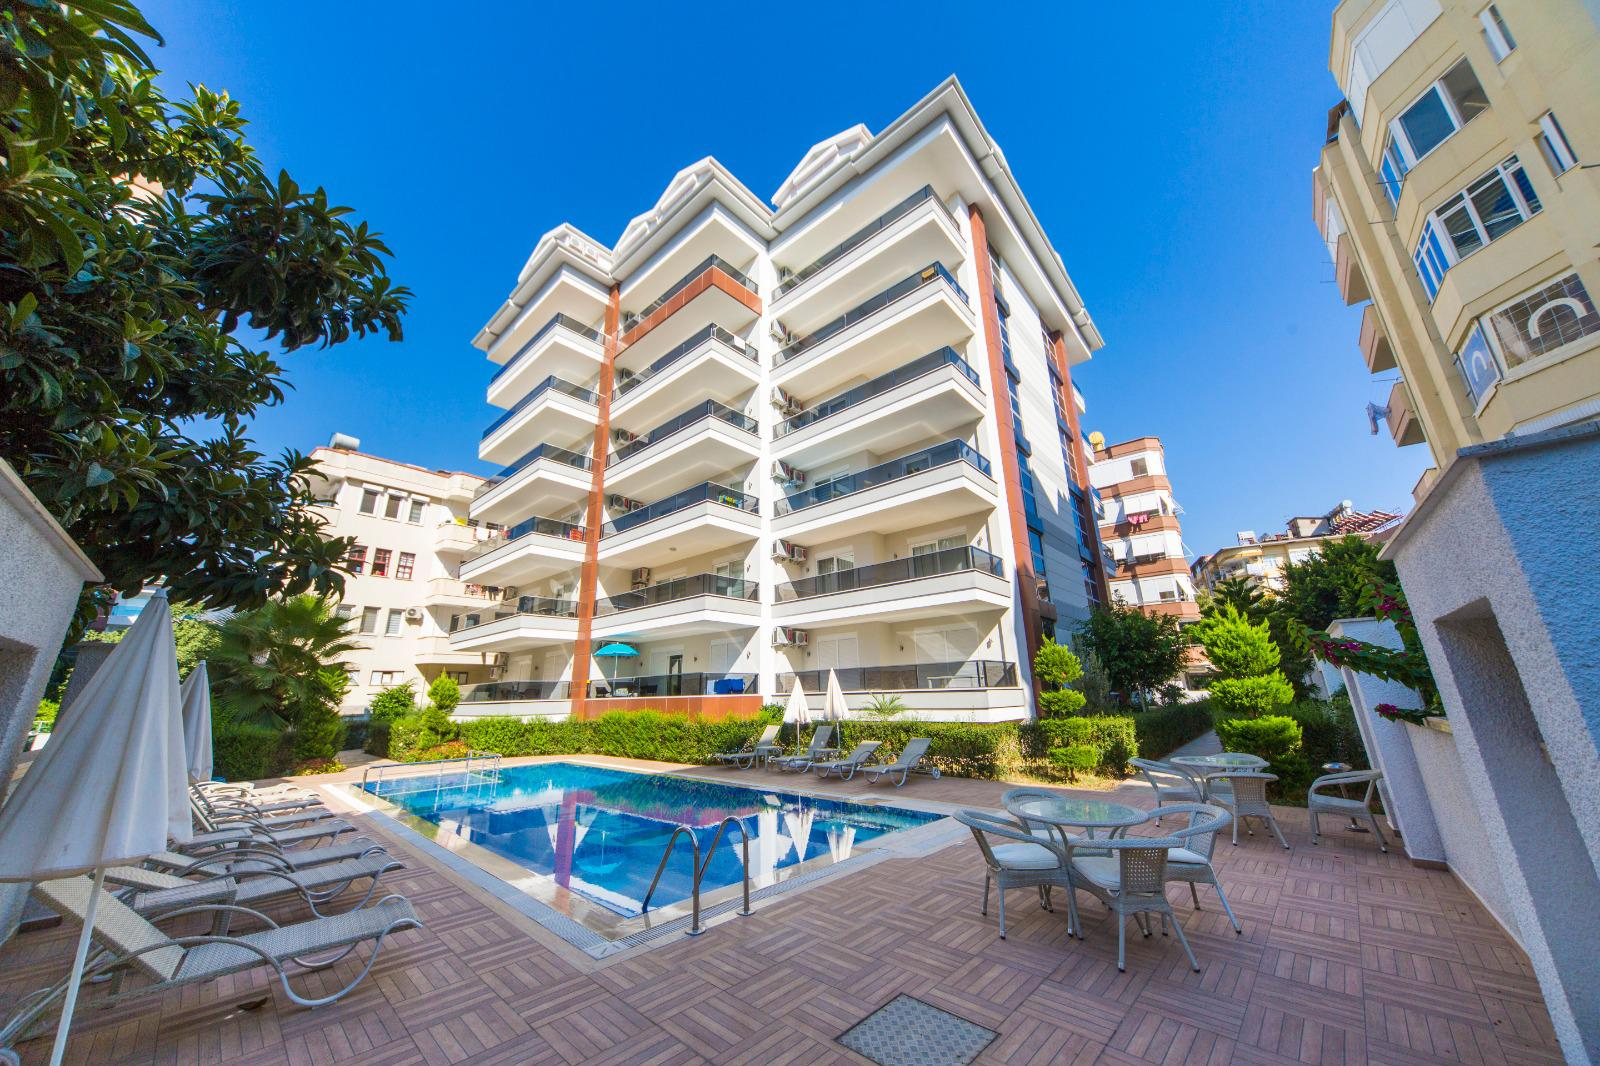 Apartments near Cleopatra beach in the center of Alanya